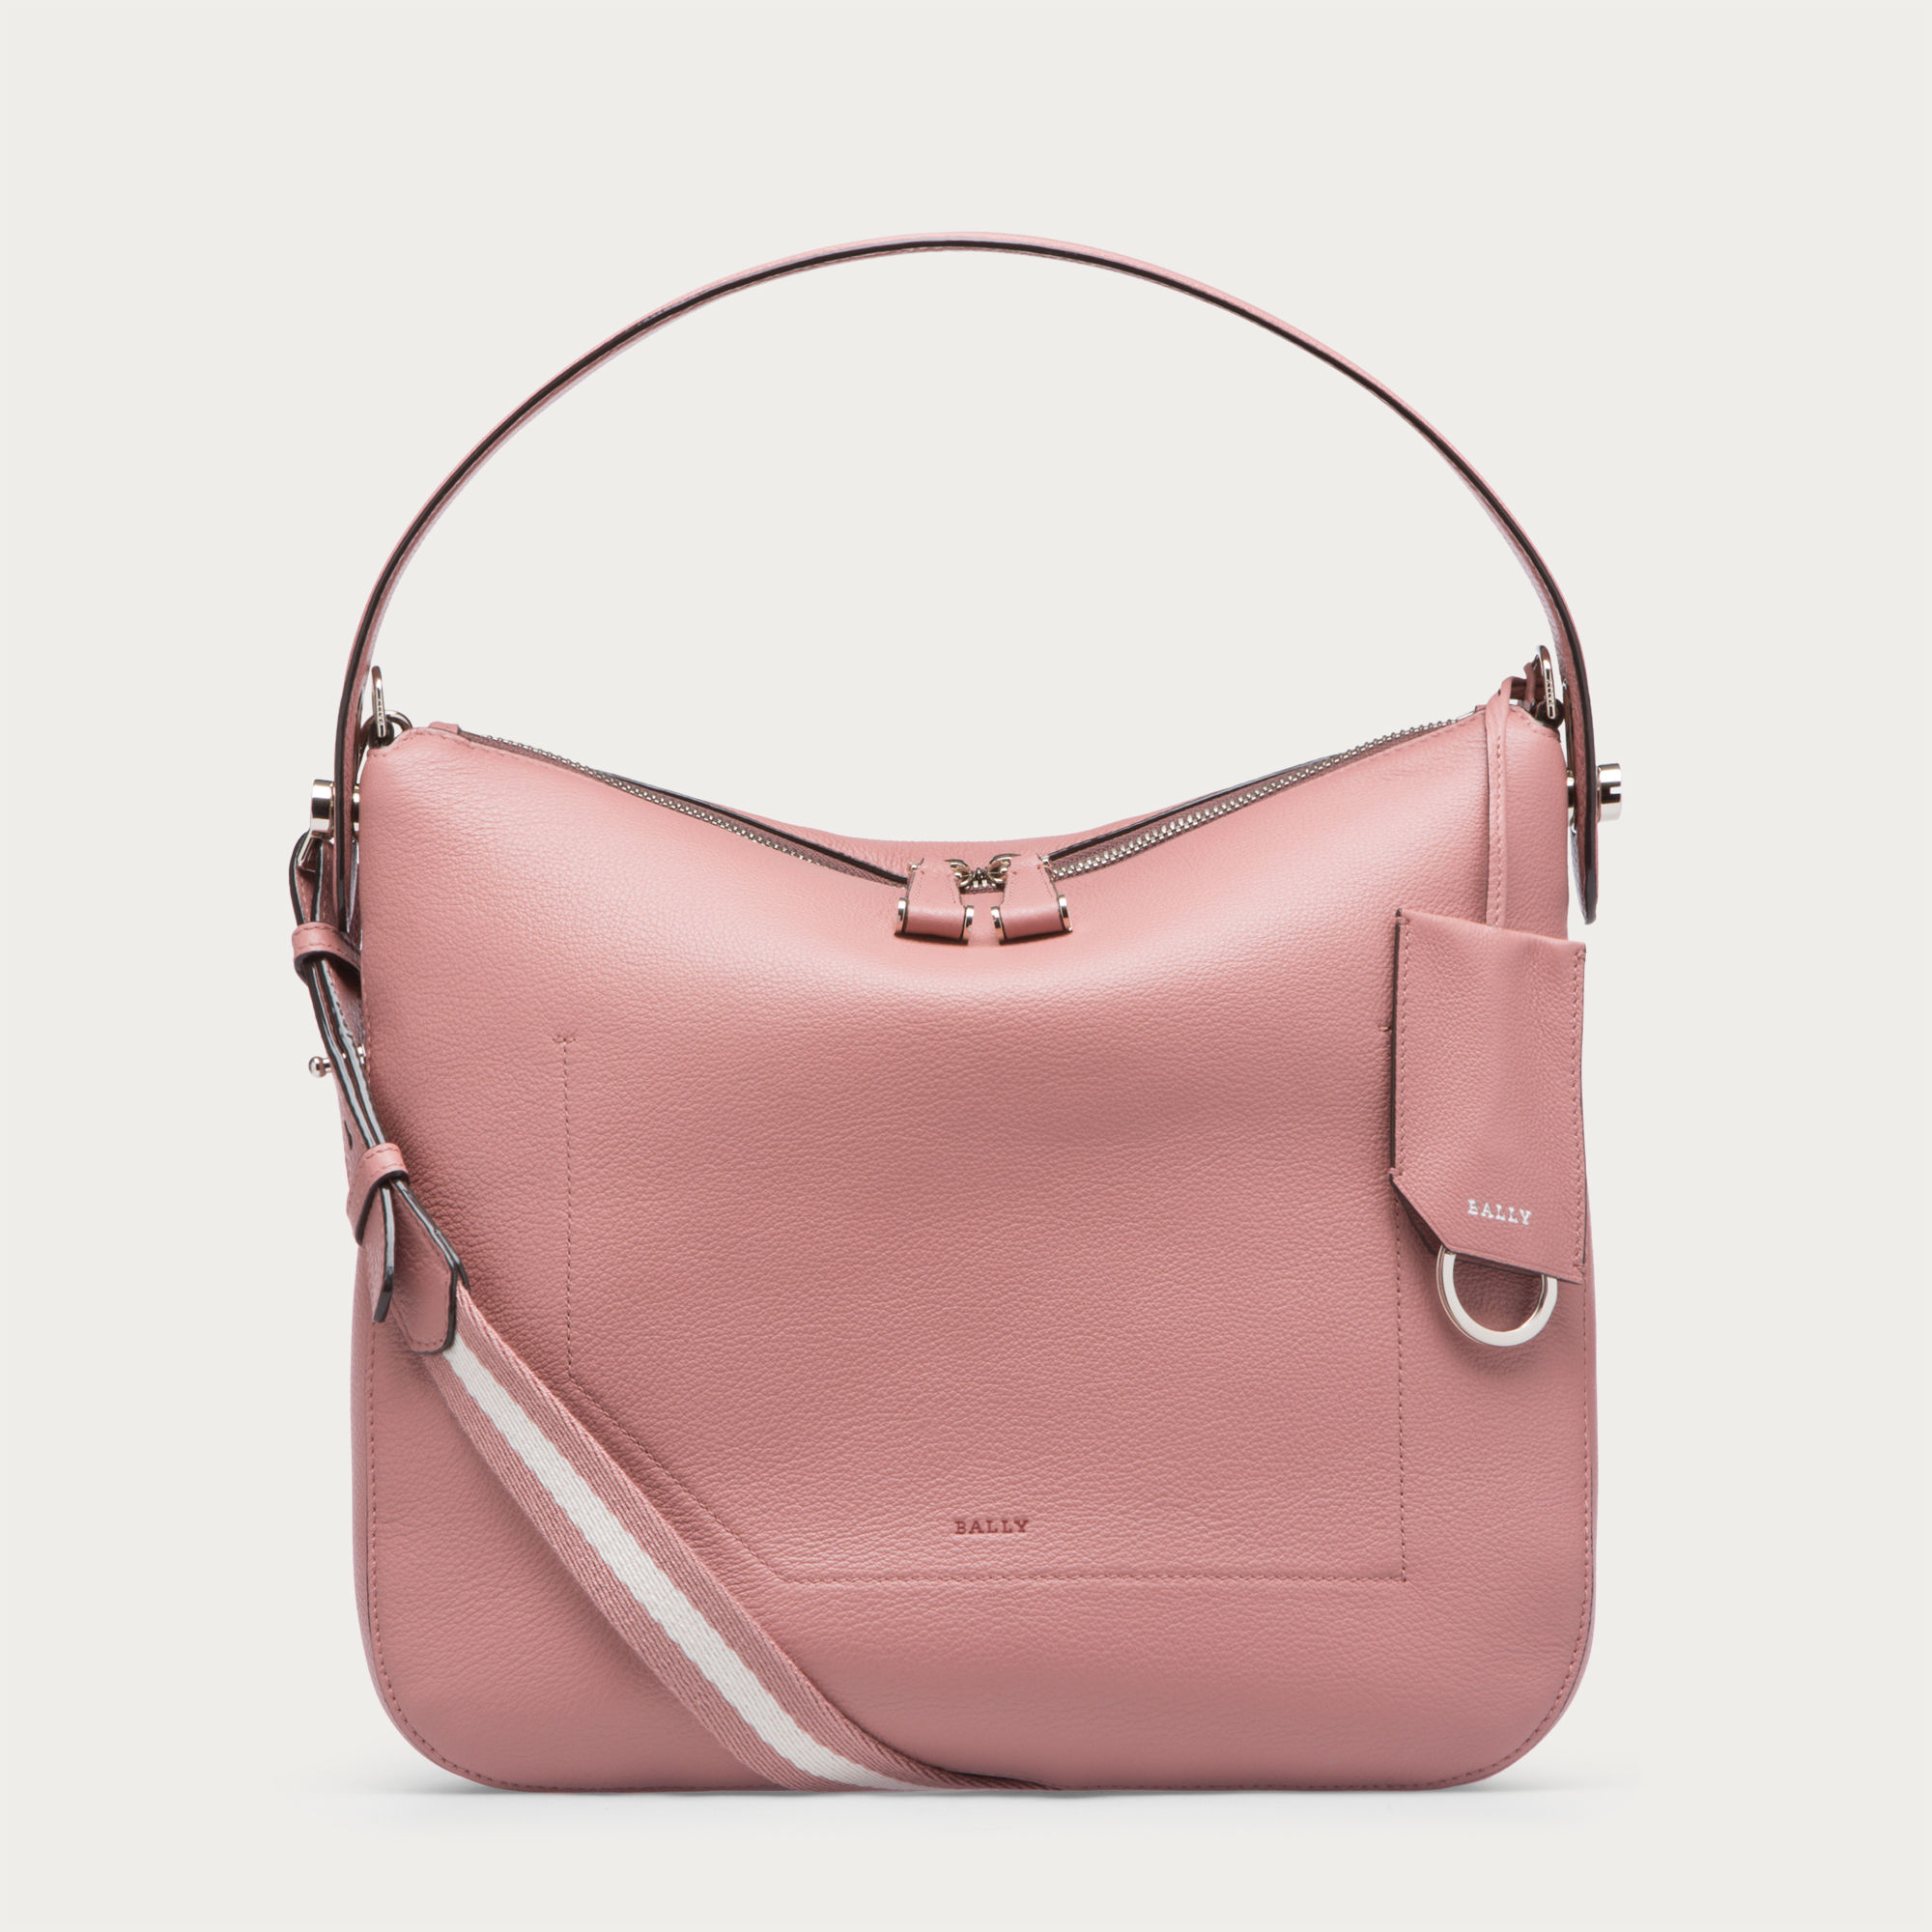 Elegant Luxury Leatheraccessories Specialist Bally Has Launched Its Springsummer Bag Collection Featuring Womens Colourblock Tote Bags And Soft, Neutraltone Travel Bags For Men The Batinka Bags From The Womens Collection Are Perfect